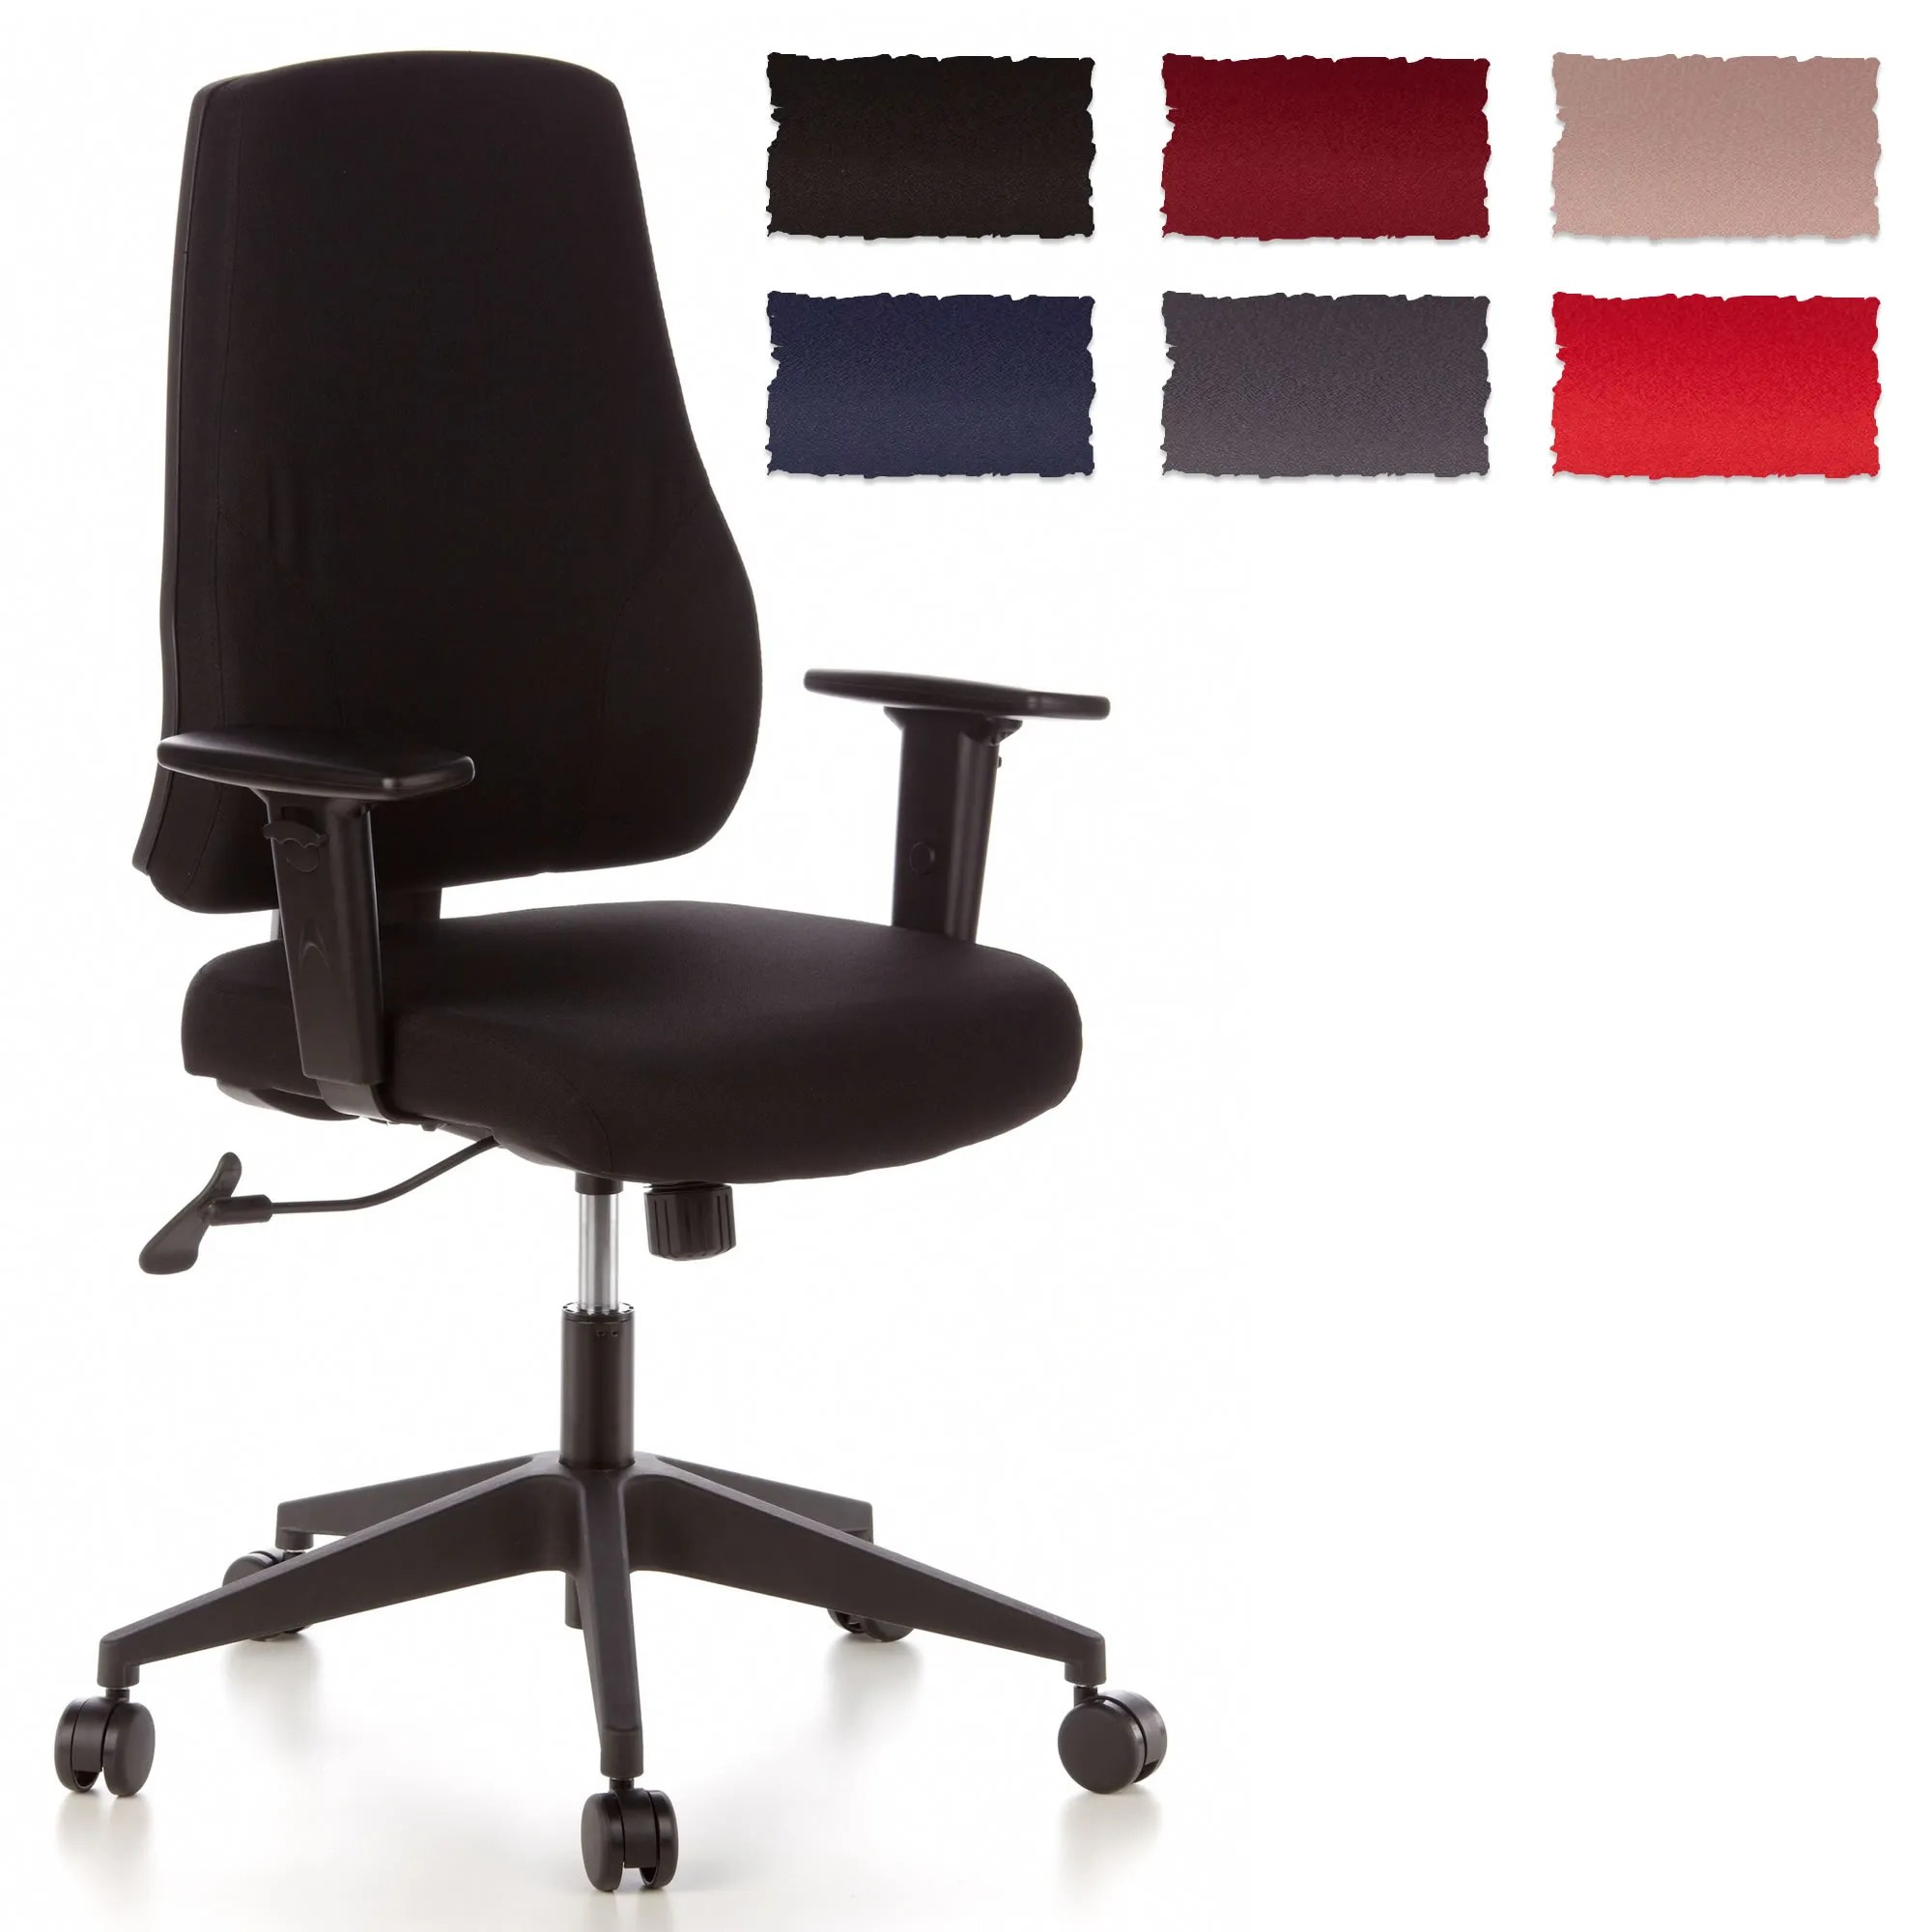 ergonomic chair pros kids table with chairs office swivel desk furniture reclining pro